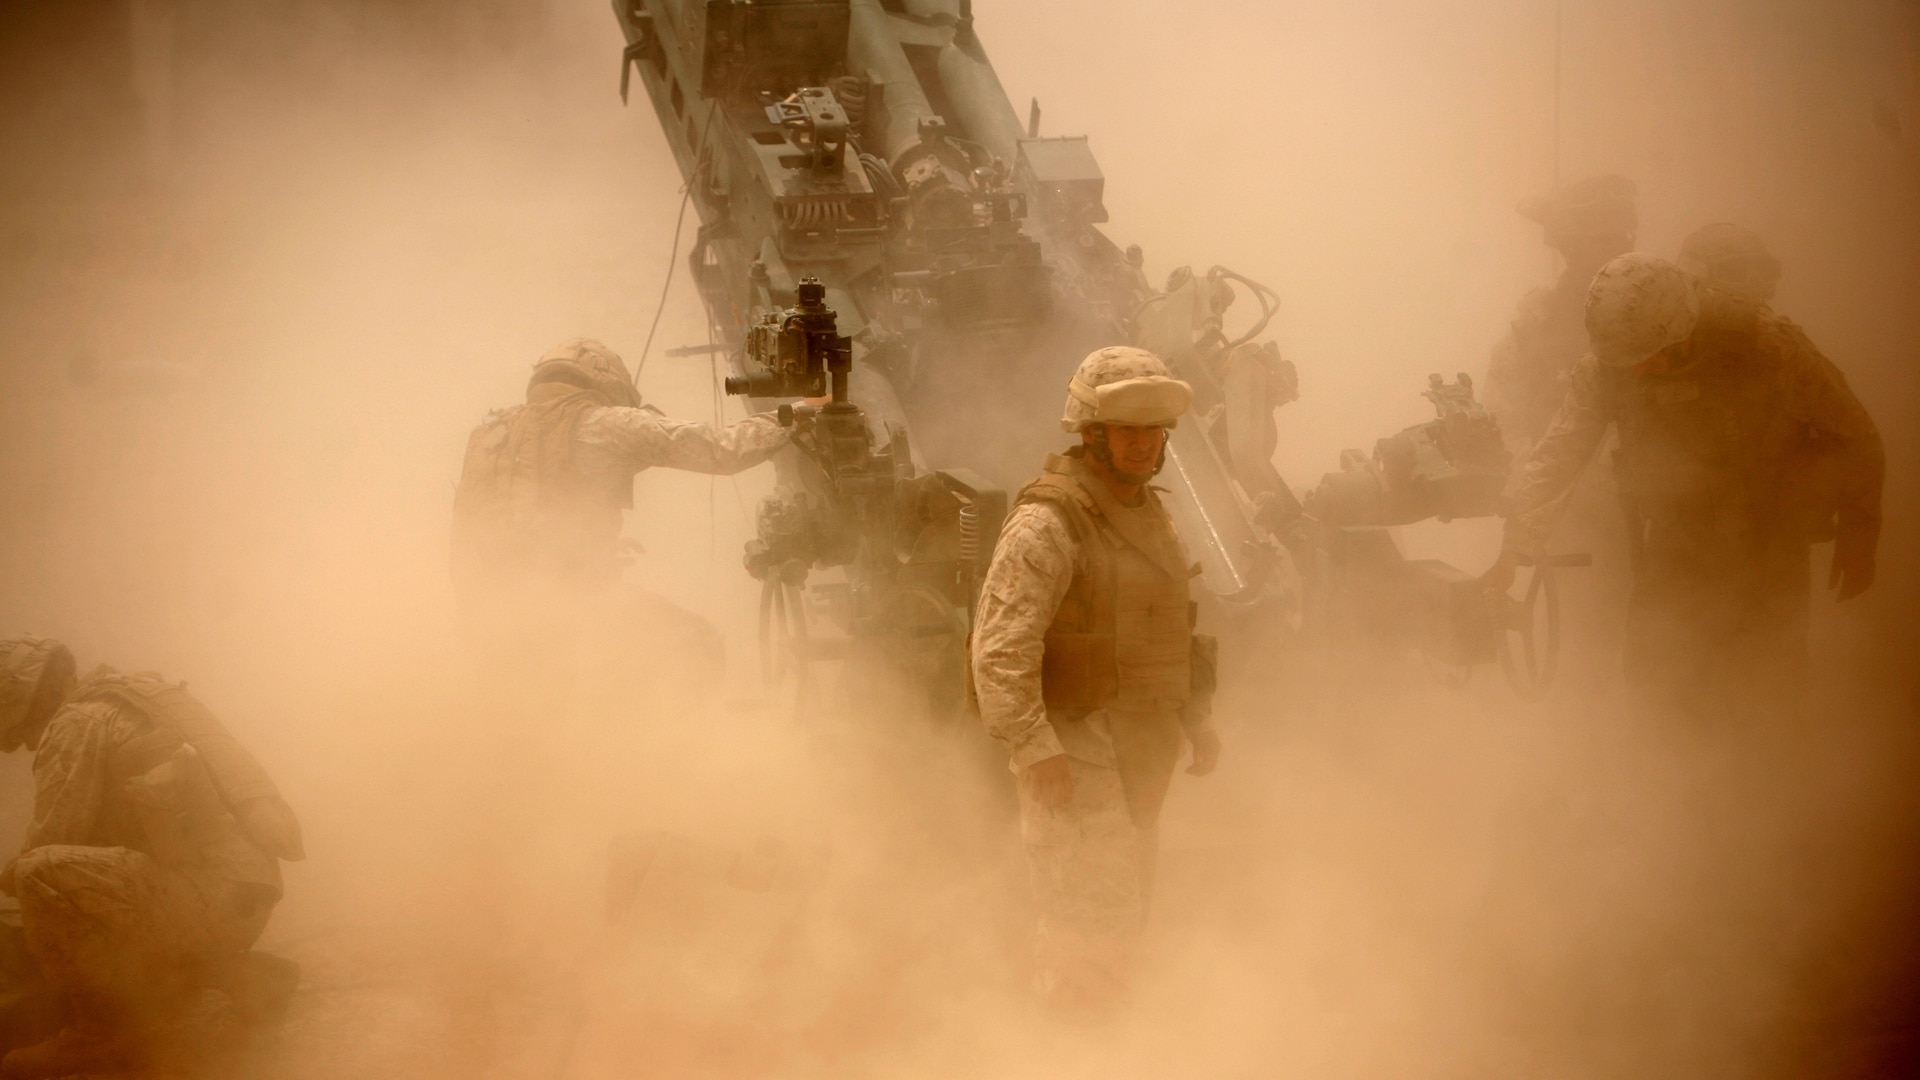 Marines from Battery M, 3rd Battalion, 11th Marine Regiment fire an M777 howitzer during a training exercise aboard Camp Fallujah, Iraq, April 19, 2008. (Sgt Nathaniel C. LeBlanc/Marine Corps)